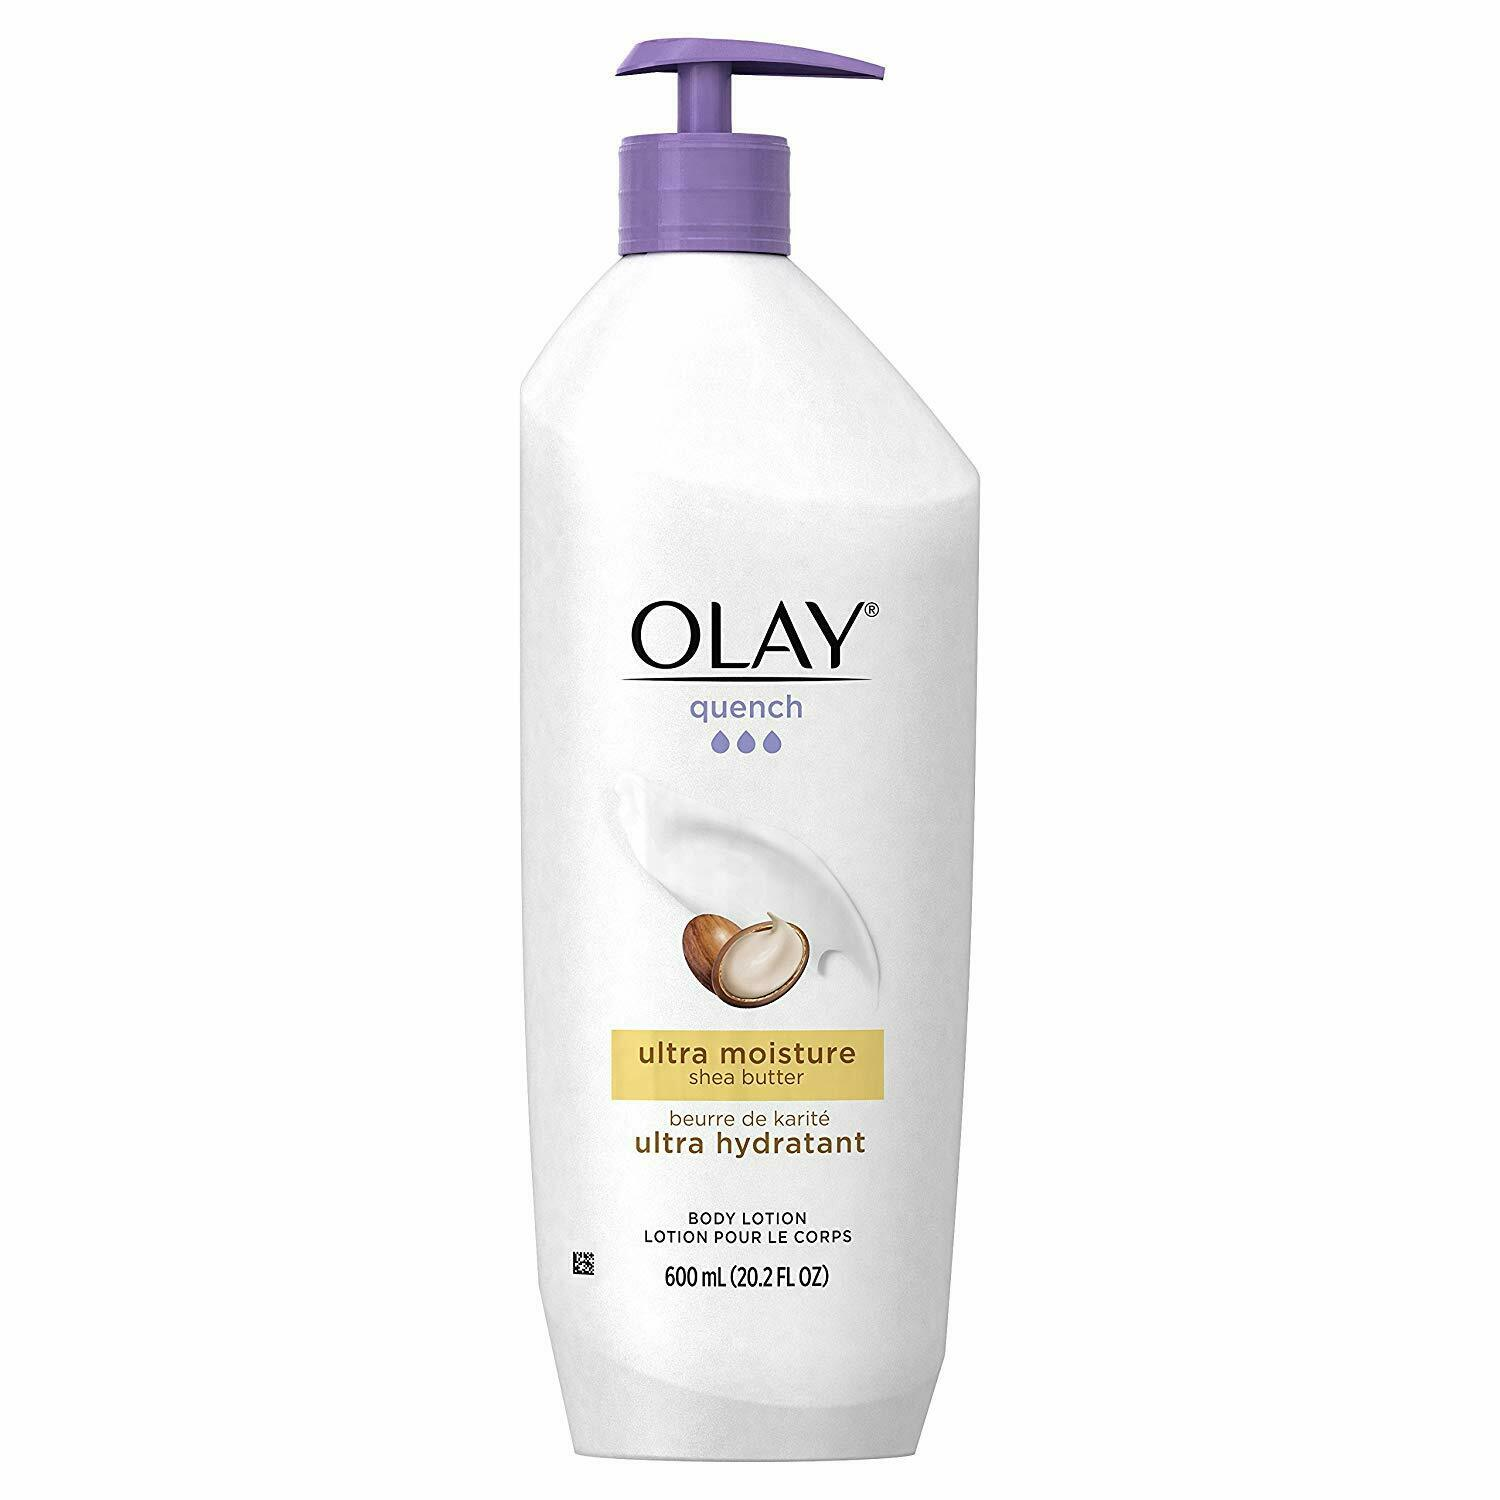 Olay Quench Body Lotion Ultra Moisture with Shea Butter and